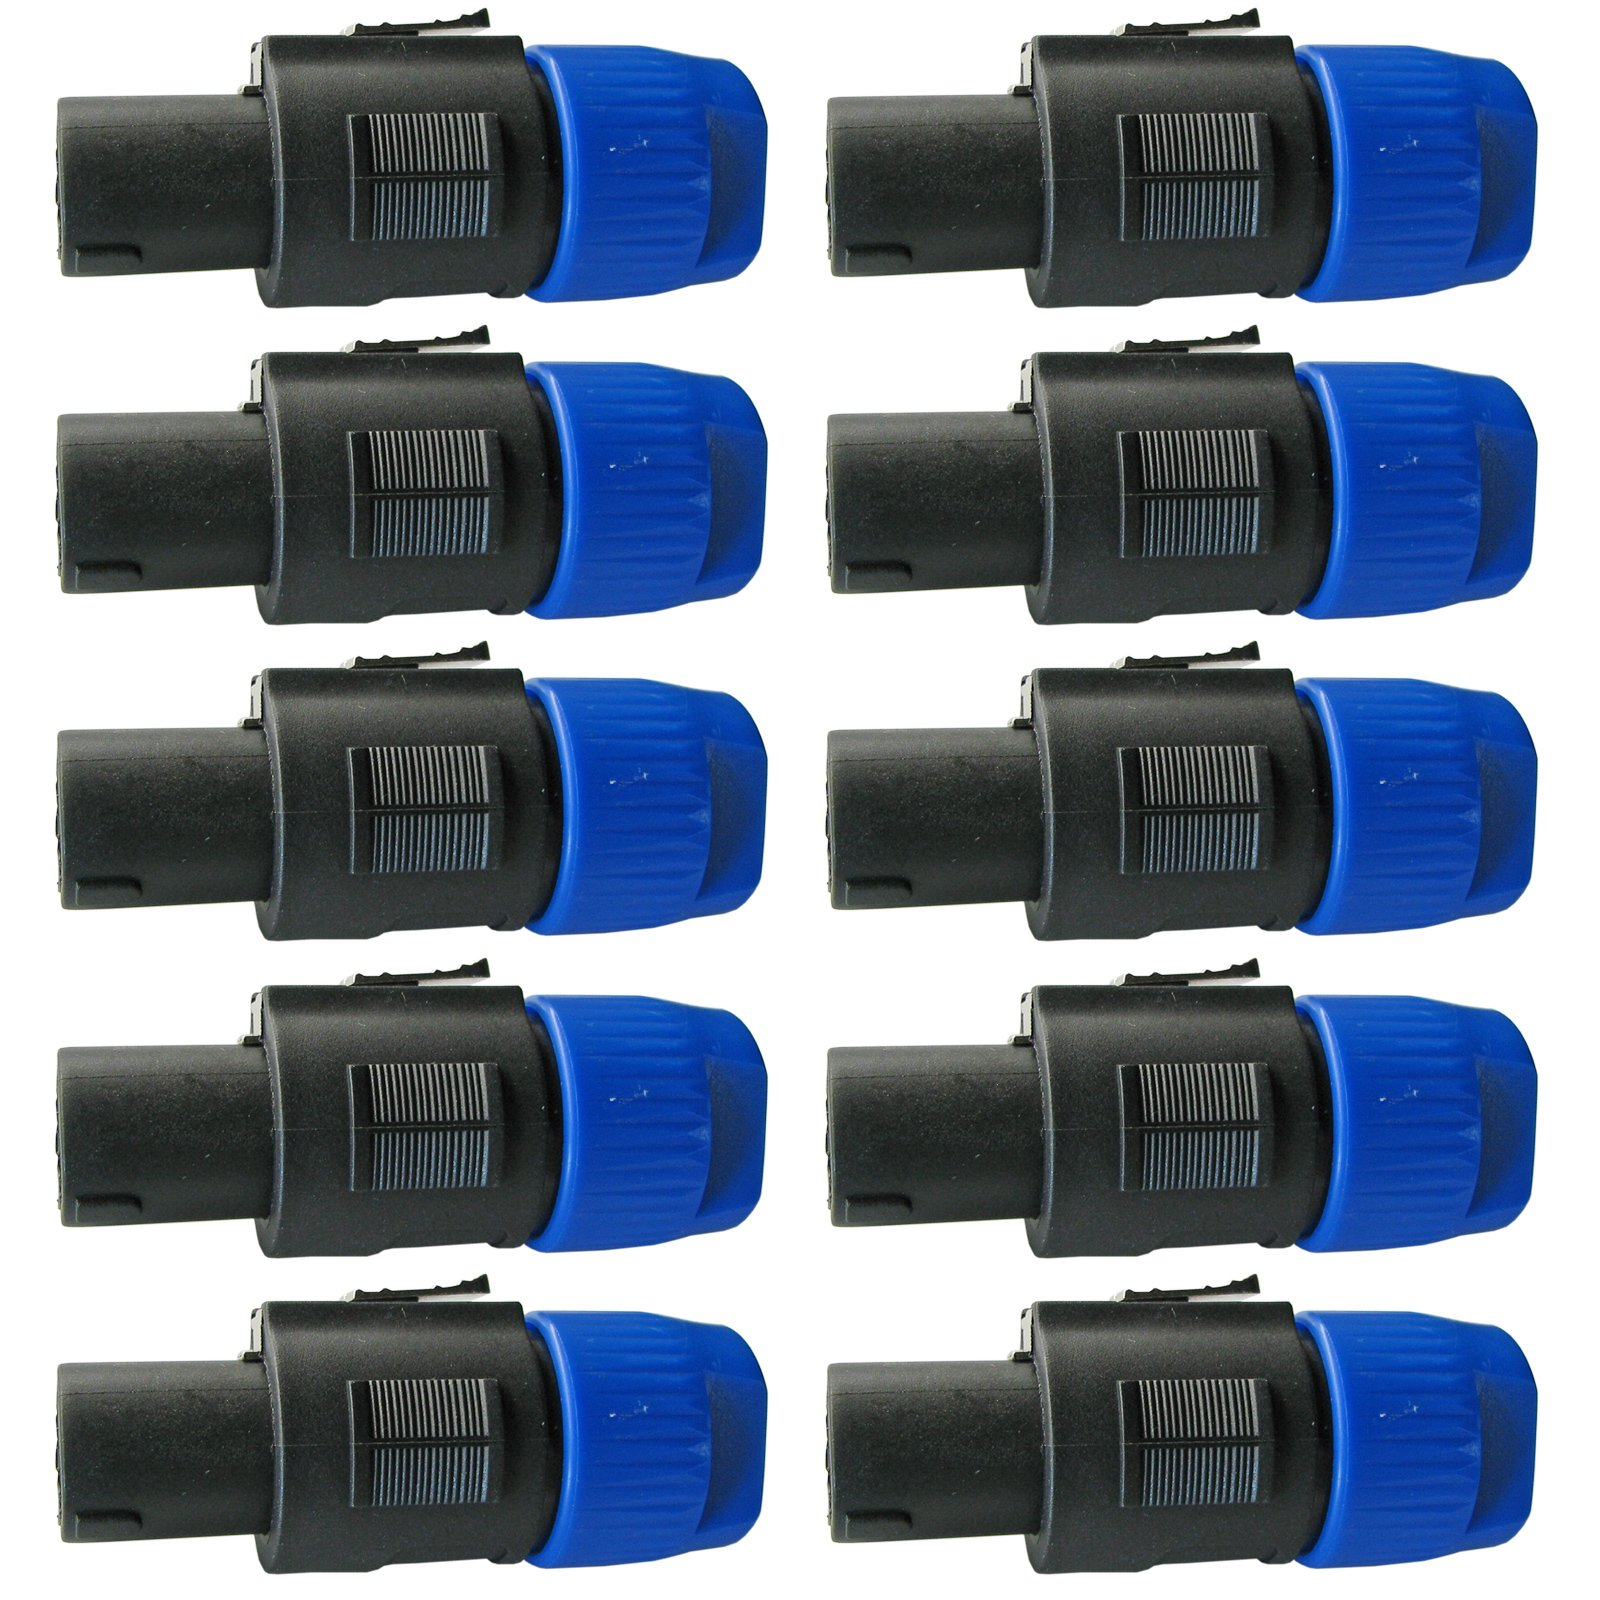 Yovus 10 Pack: Male Twist Lock Speaker Cable Connector For Speakon Speaker cable 4 pole